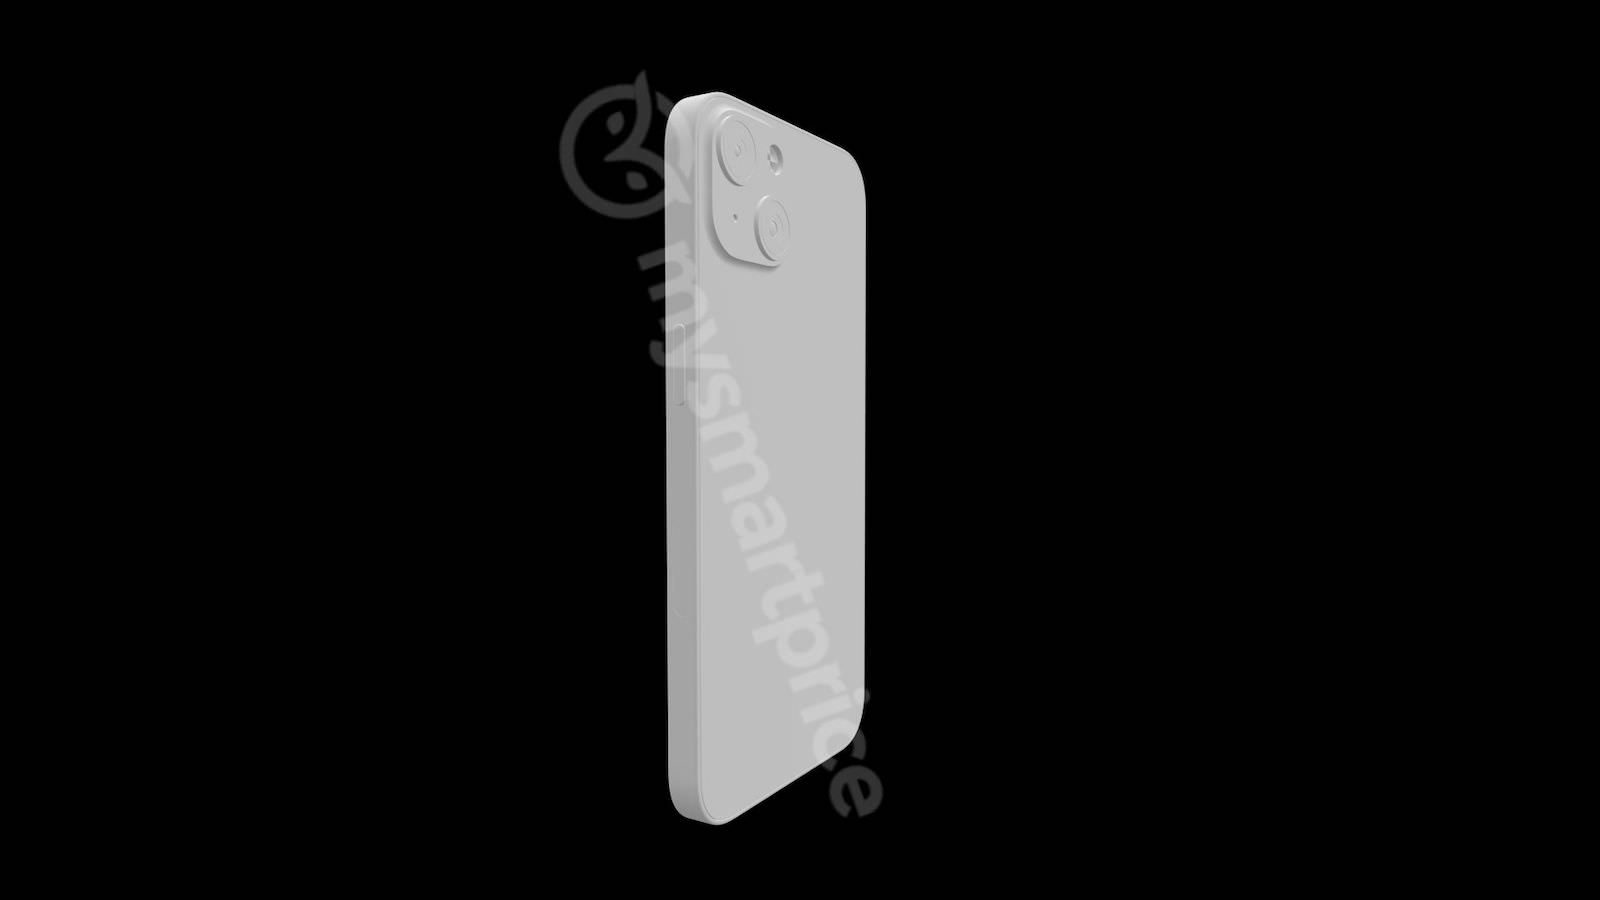 Iphone13 3d rendering images 2